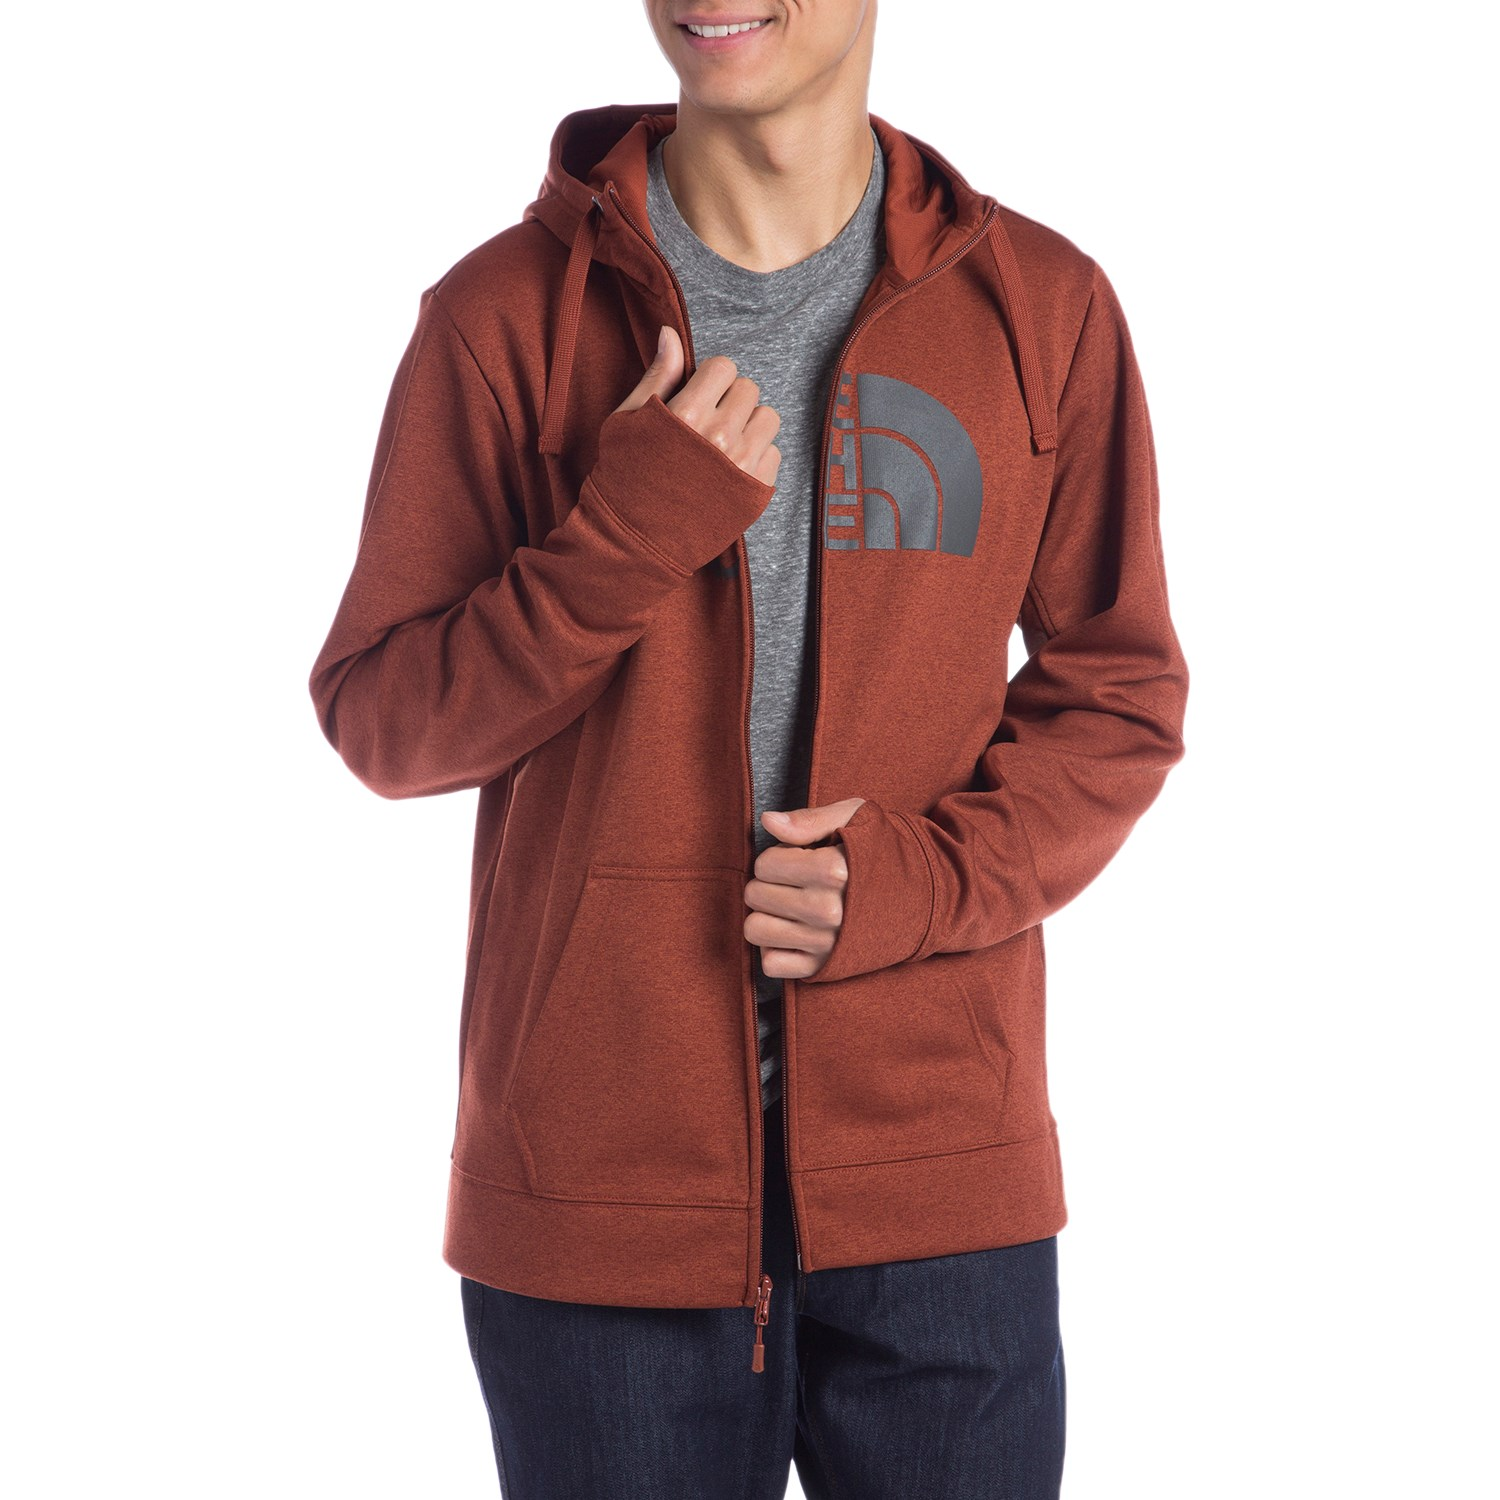 310a02d85 The North Face Surgent Half Dome Full Zip Hoodie